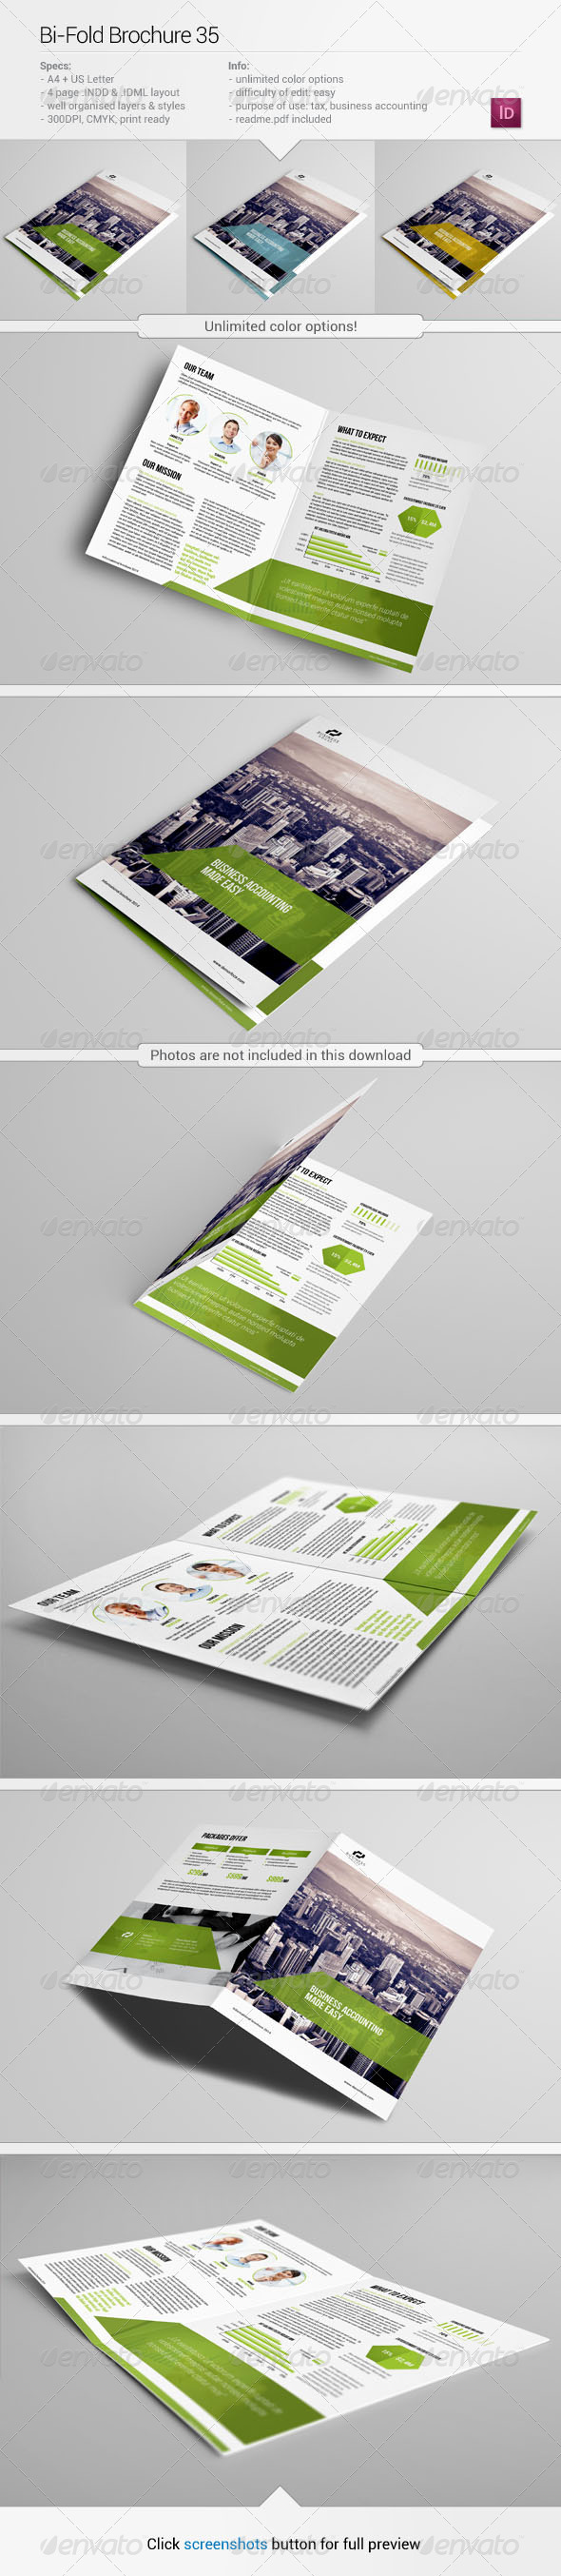 GraphicRiver Bi-Fold Brochure 35 6020266